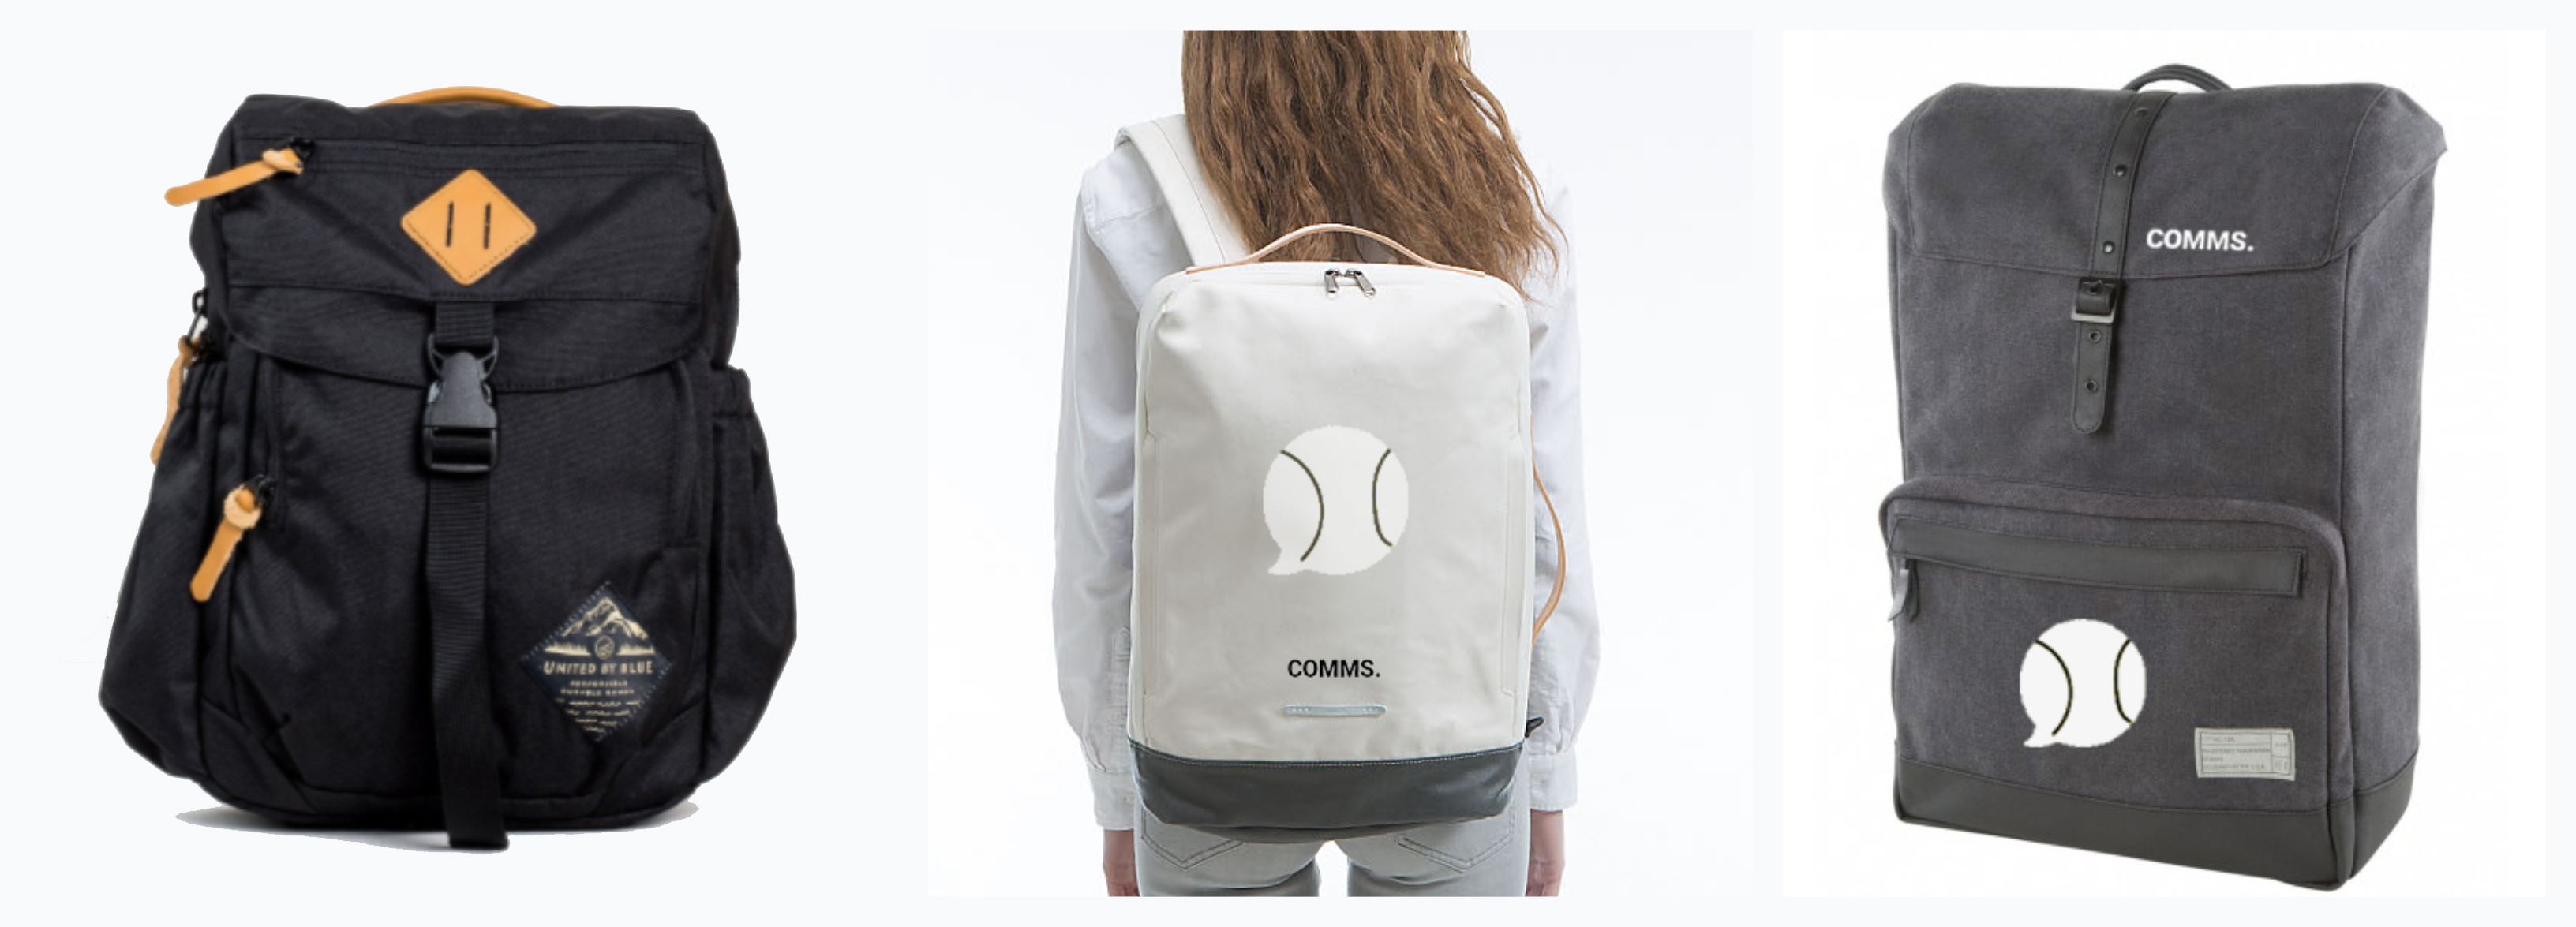 Utility Backpack, Custom Backpack, Laptop Bag